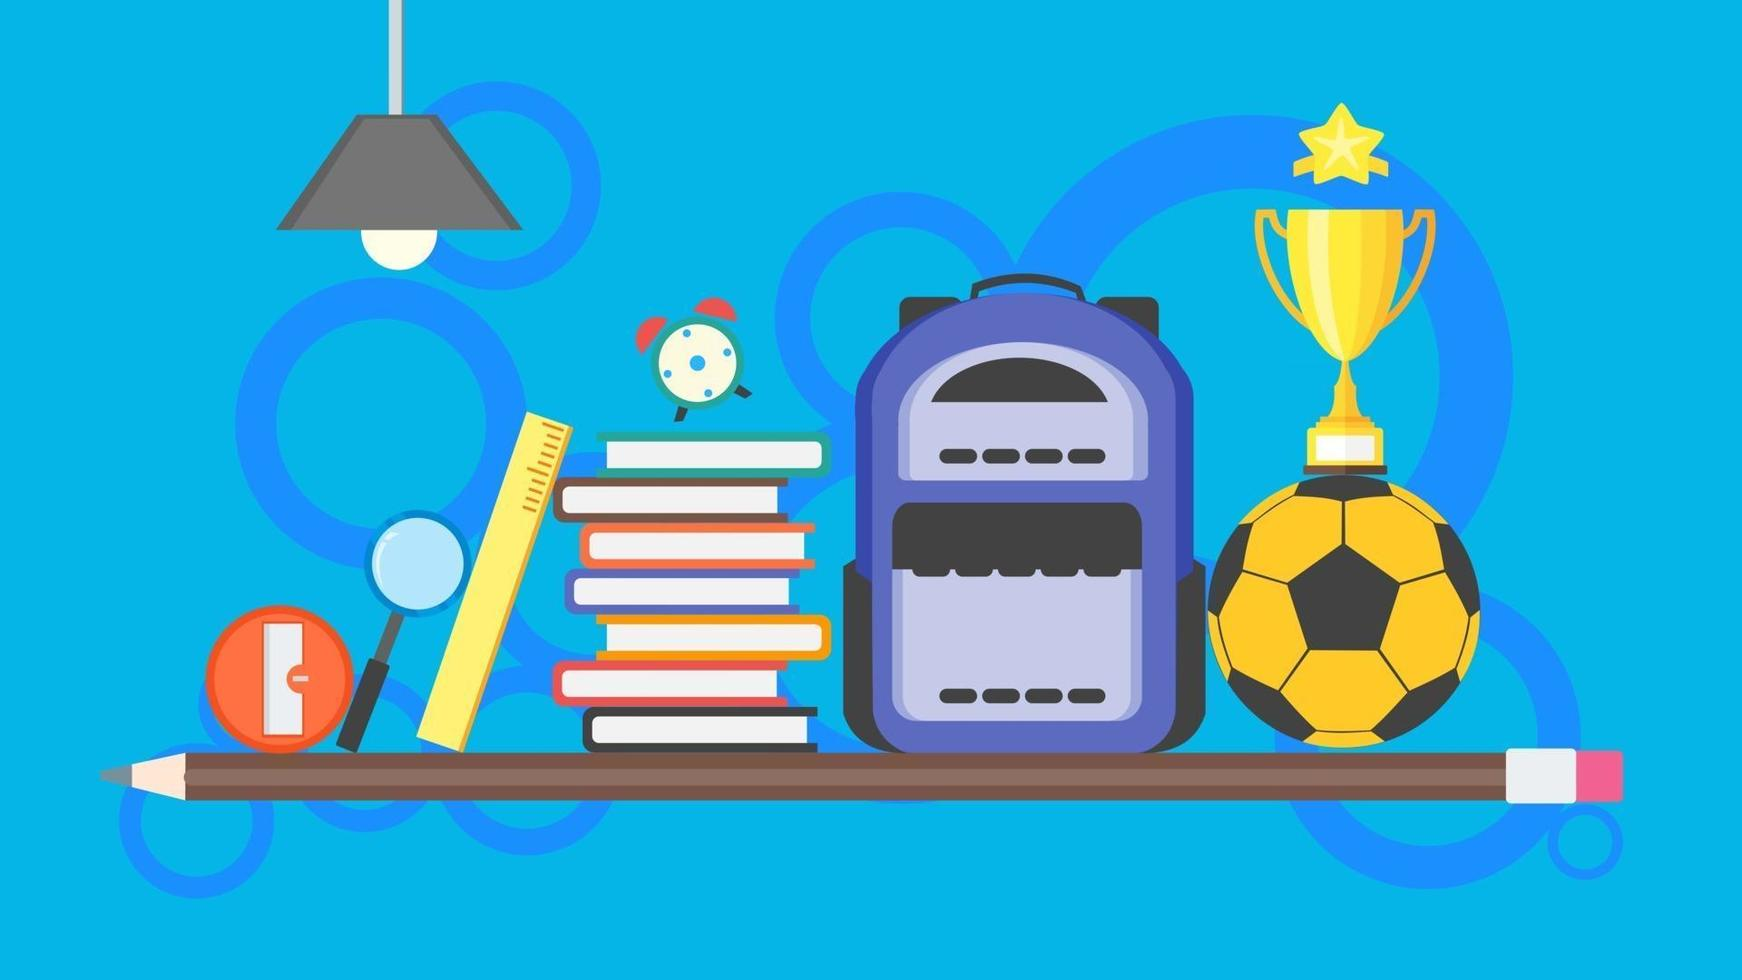 Back to school poster background. learning banner concept with backpack, pile of books, soccer ball, pencil, trophy, ruler, and education item. flat design vector illustration.